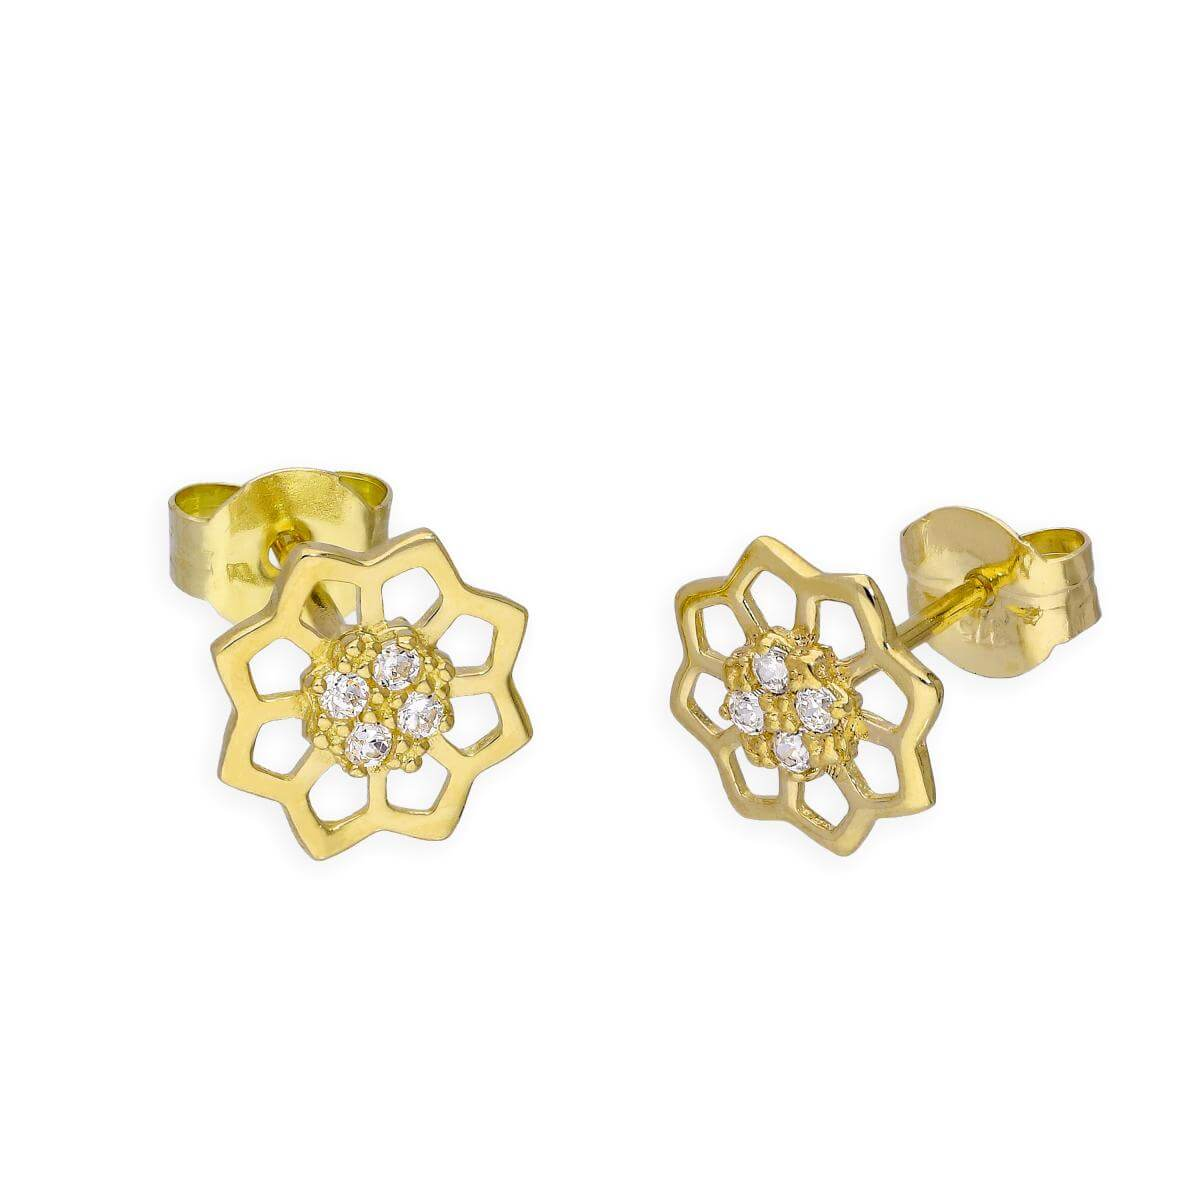 9ct Gold & Clear CZ Crystals Open Flower Stud Earrings